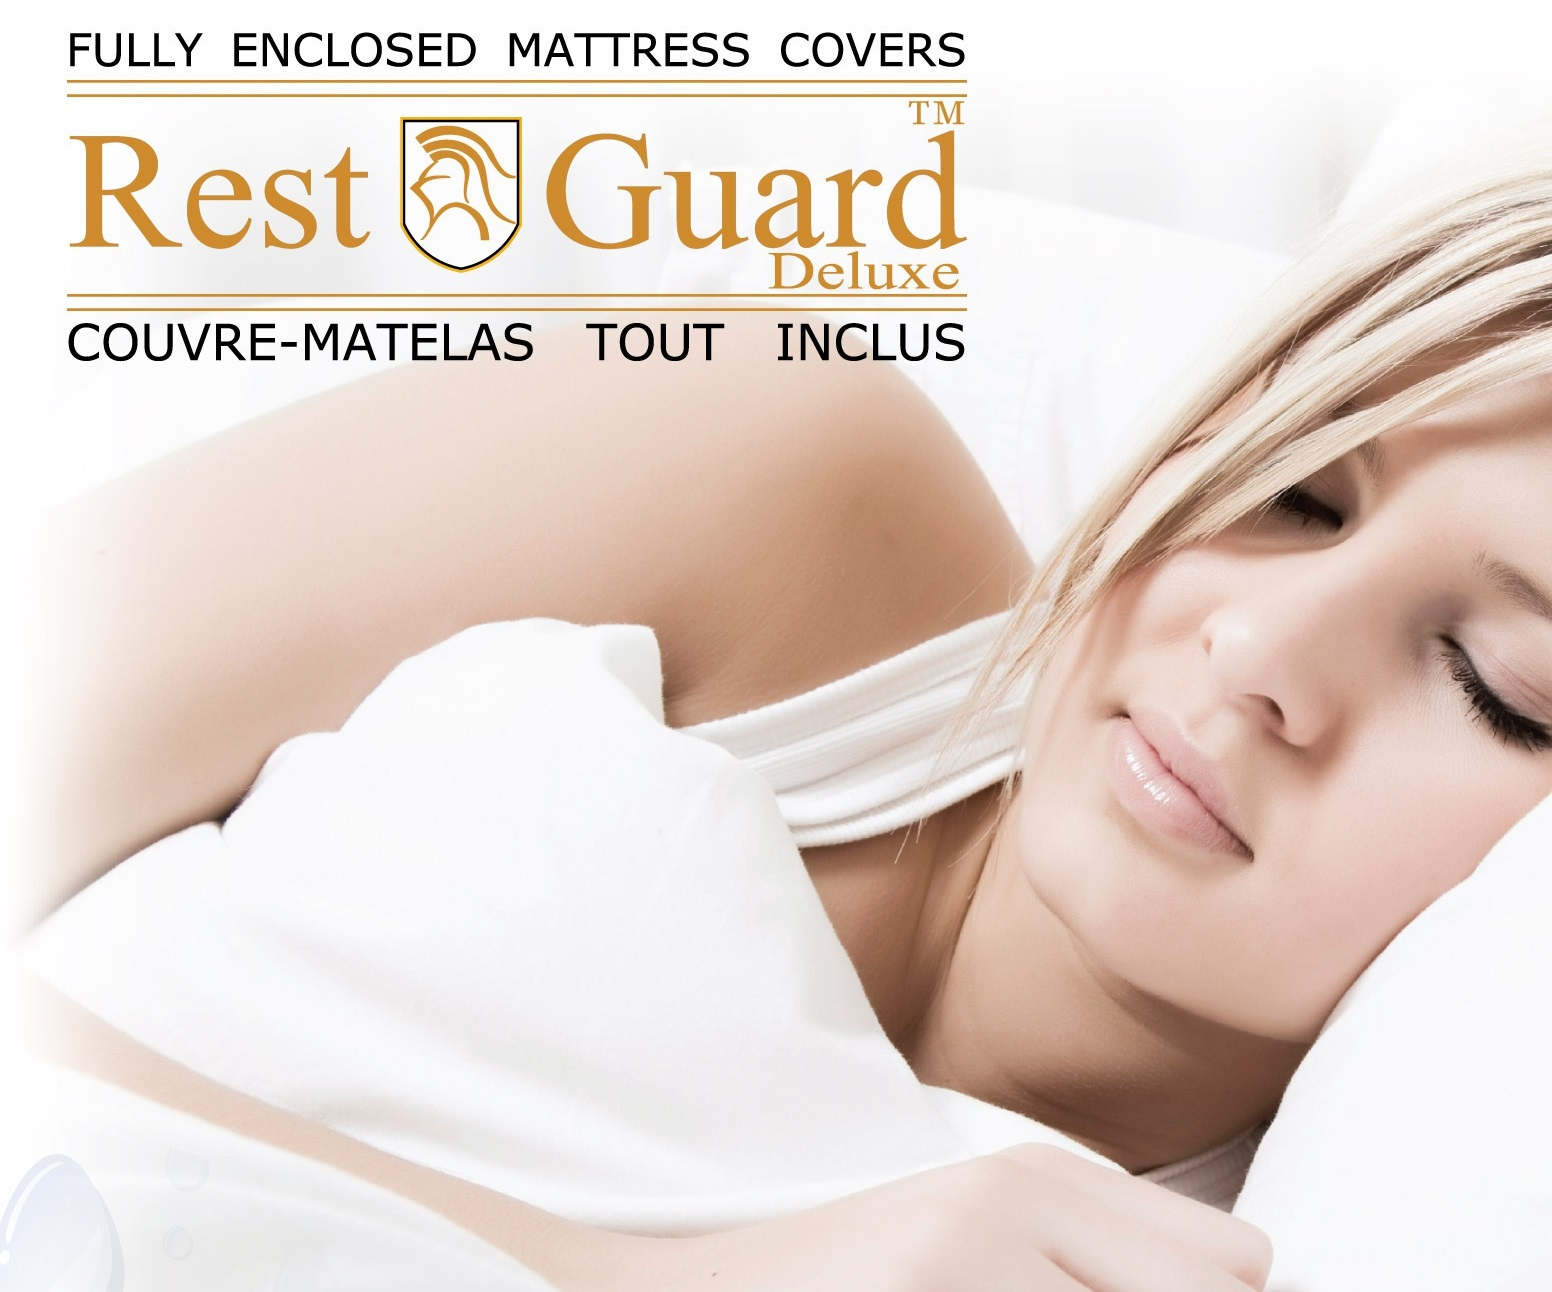 RestGuard Fully Enclosed Mattress Cover Twin Covers